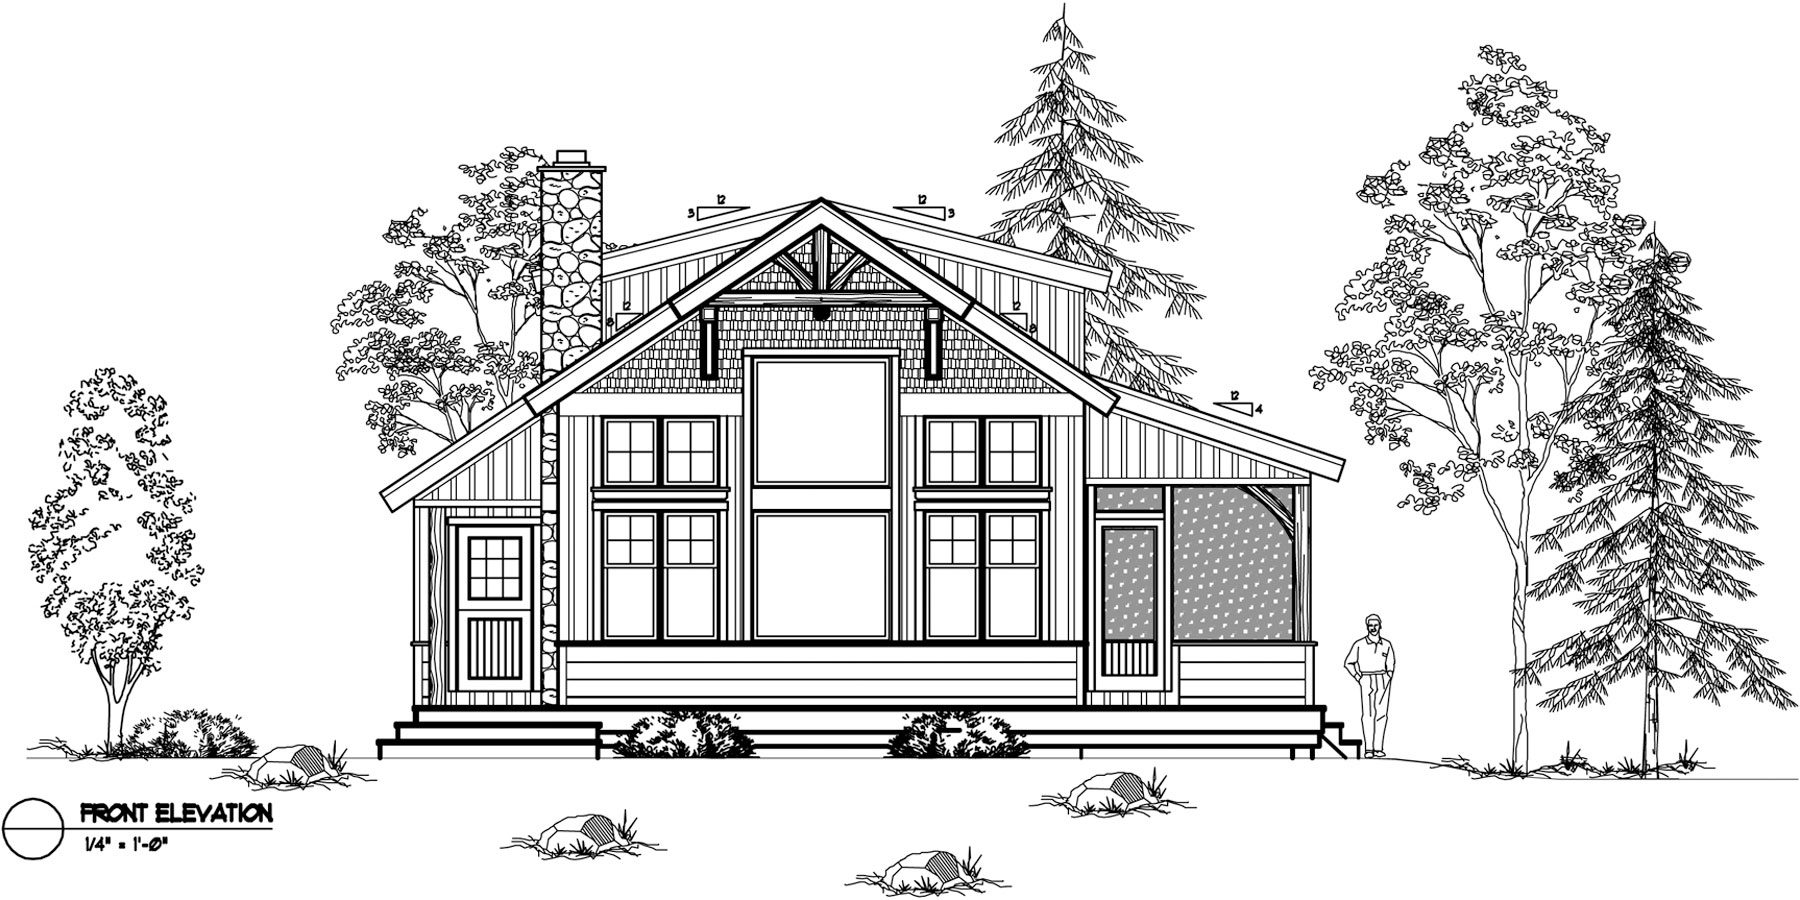 Normerica Timber Frames, House Plan, The Ranger 3575, Front Elevation